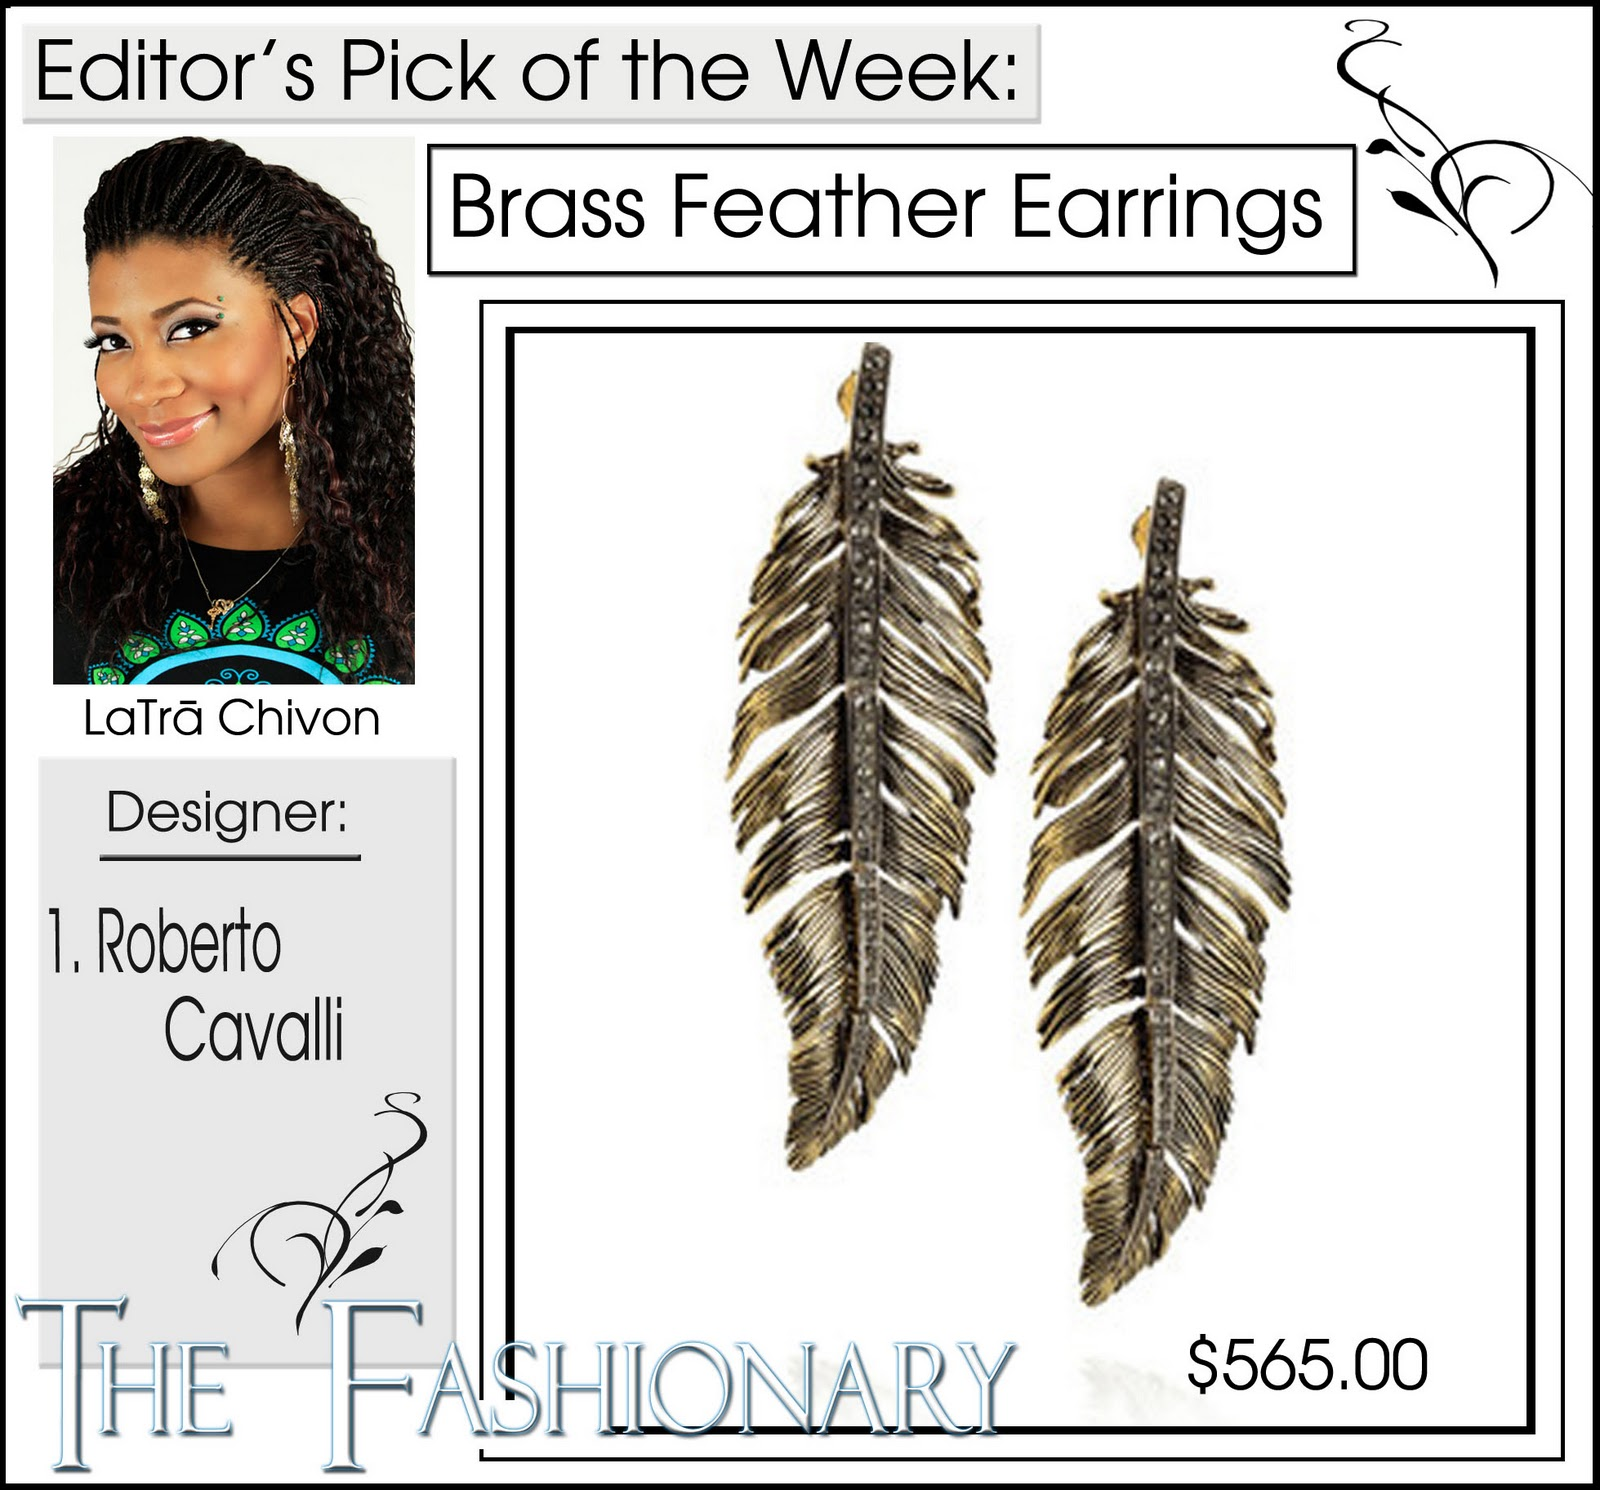 http://2.bp.blogspot.com/_DntFAE1IESA/TO9iFR0FwJI/AAAAAAAACCs/mMpr0yo5RkY/s1600/rc+Swarovski+crystal+brass+feather+earrings.jpg